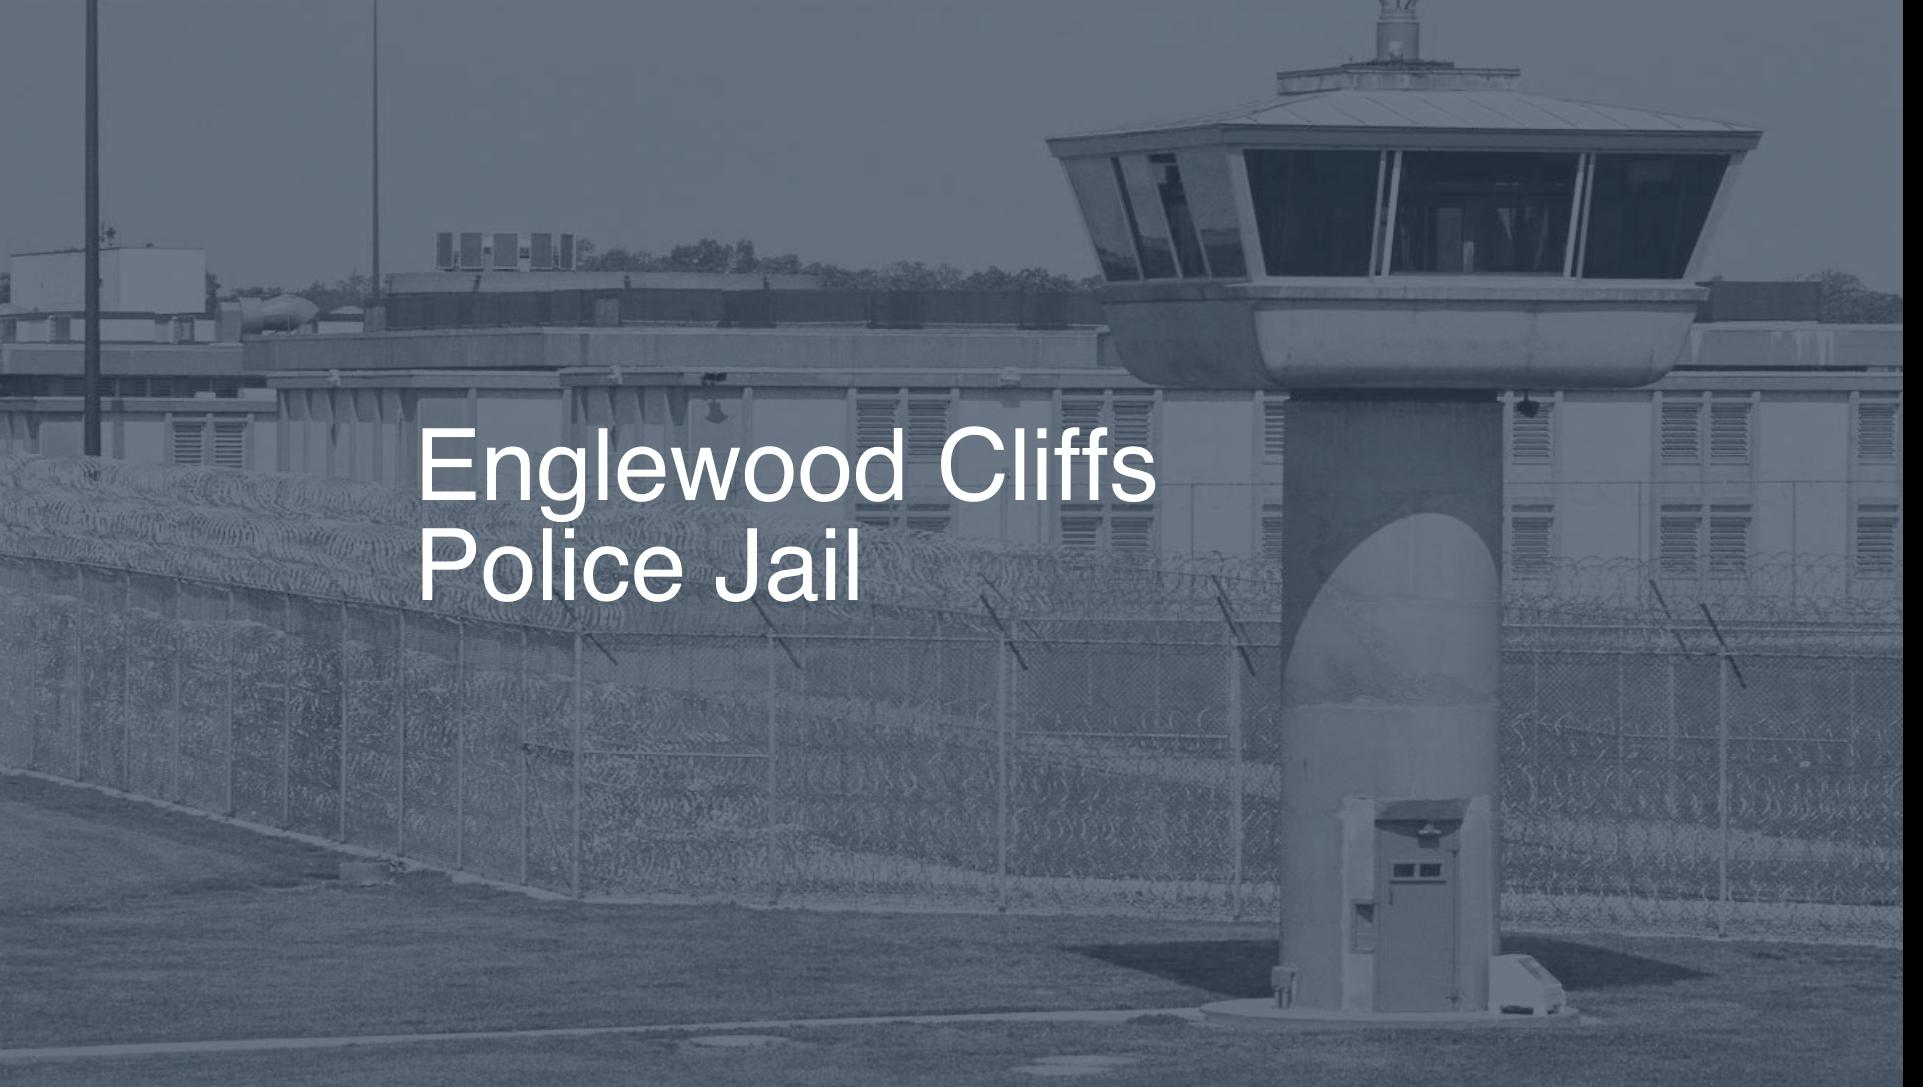 Englewood Cliffs Police Jail correctional facility picture